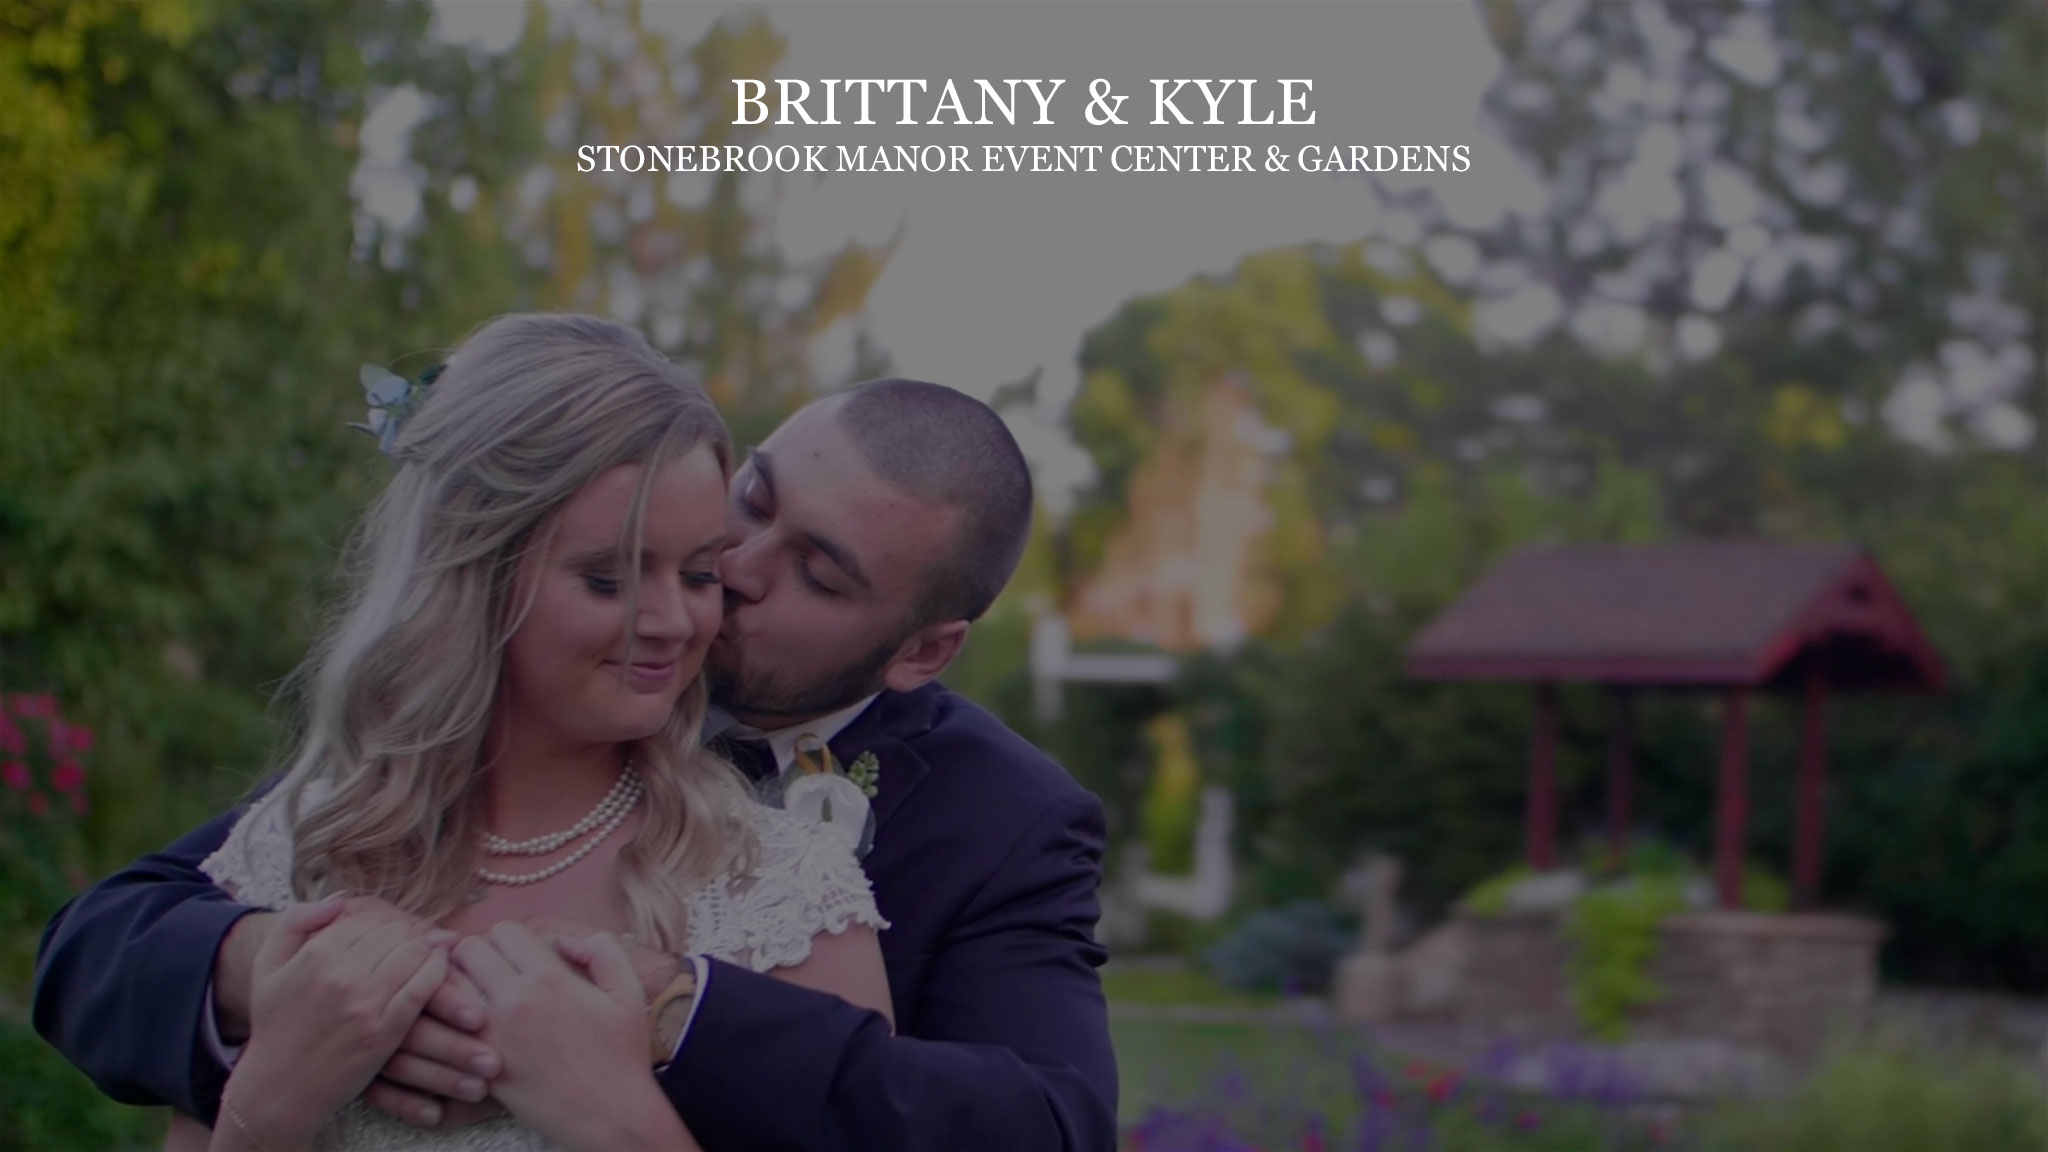 Brittany & Kyle at Stonebrook Manor